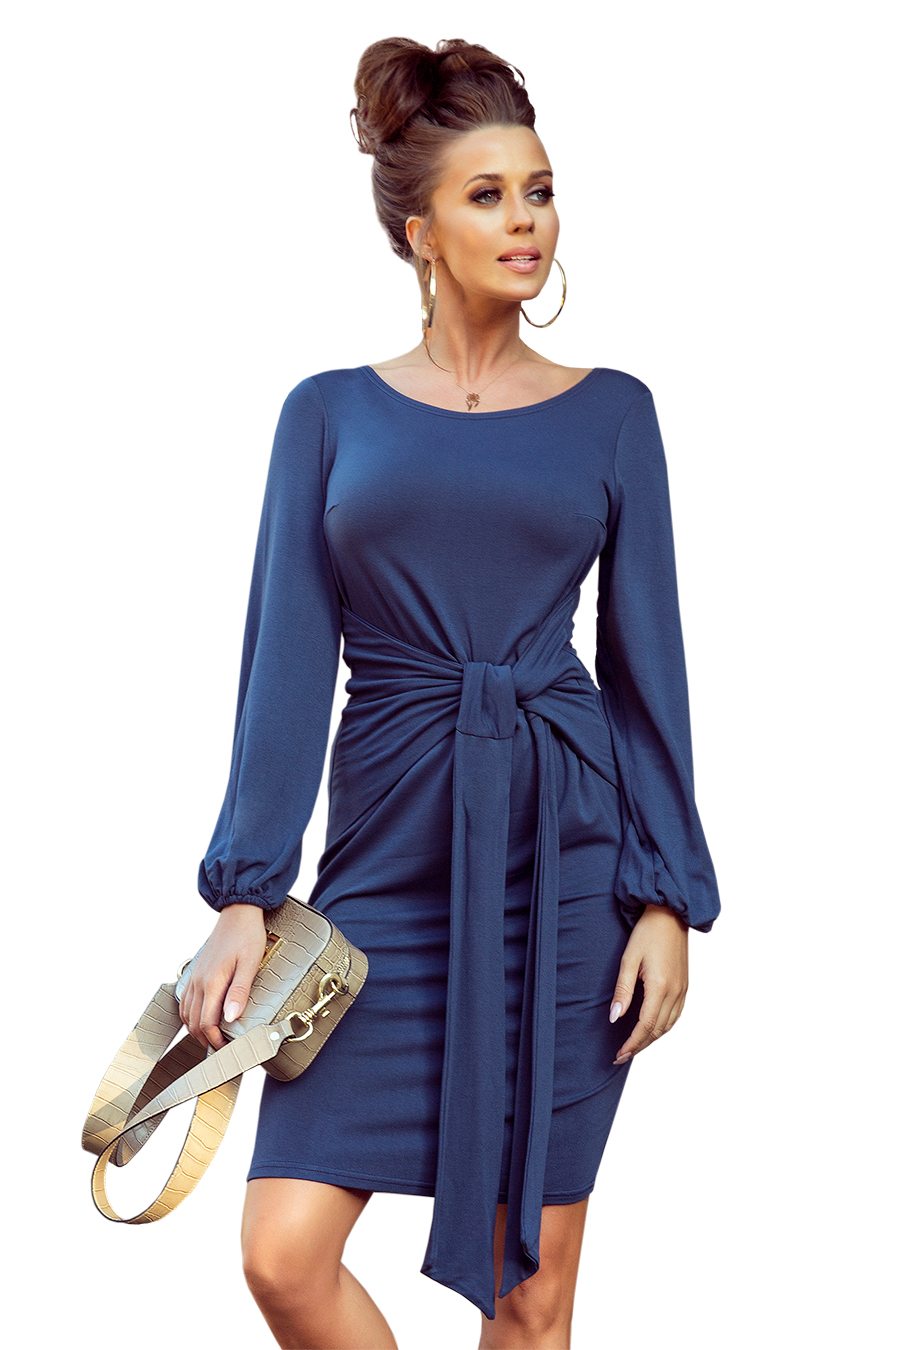 275-2 JENNY Comfortable dress with binding at the waist - JEANS